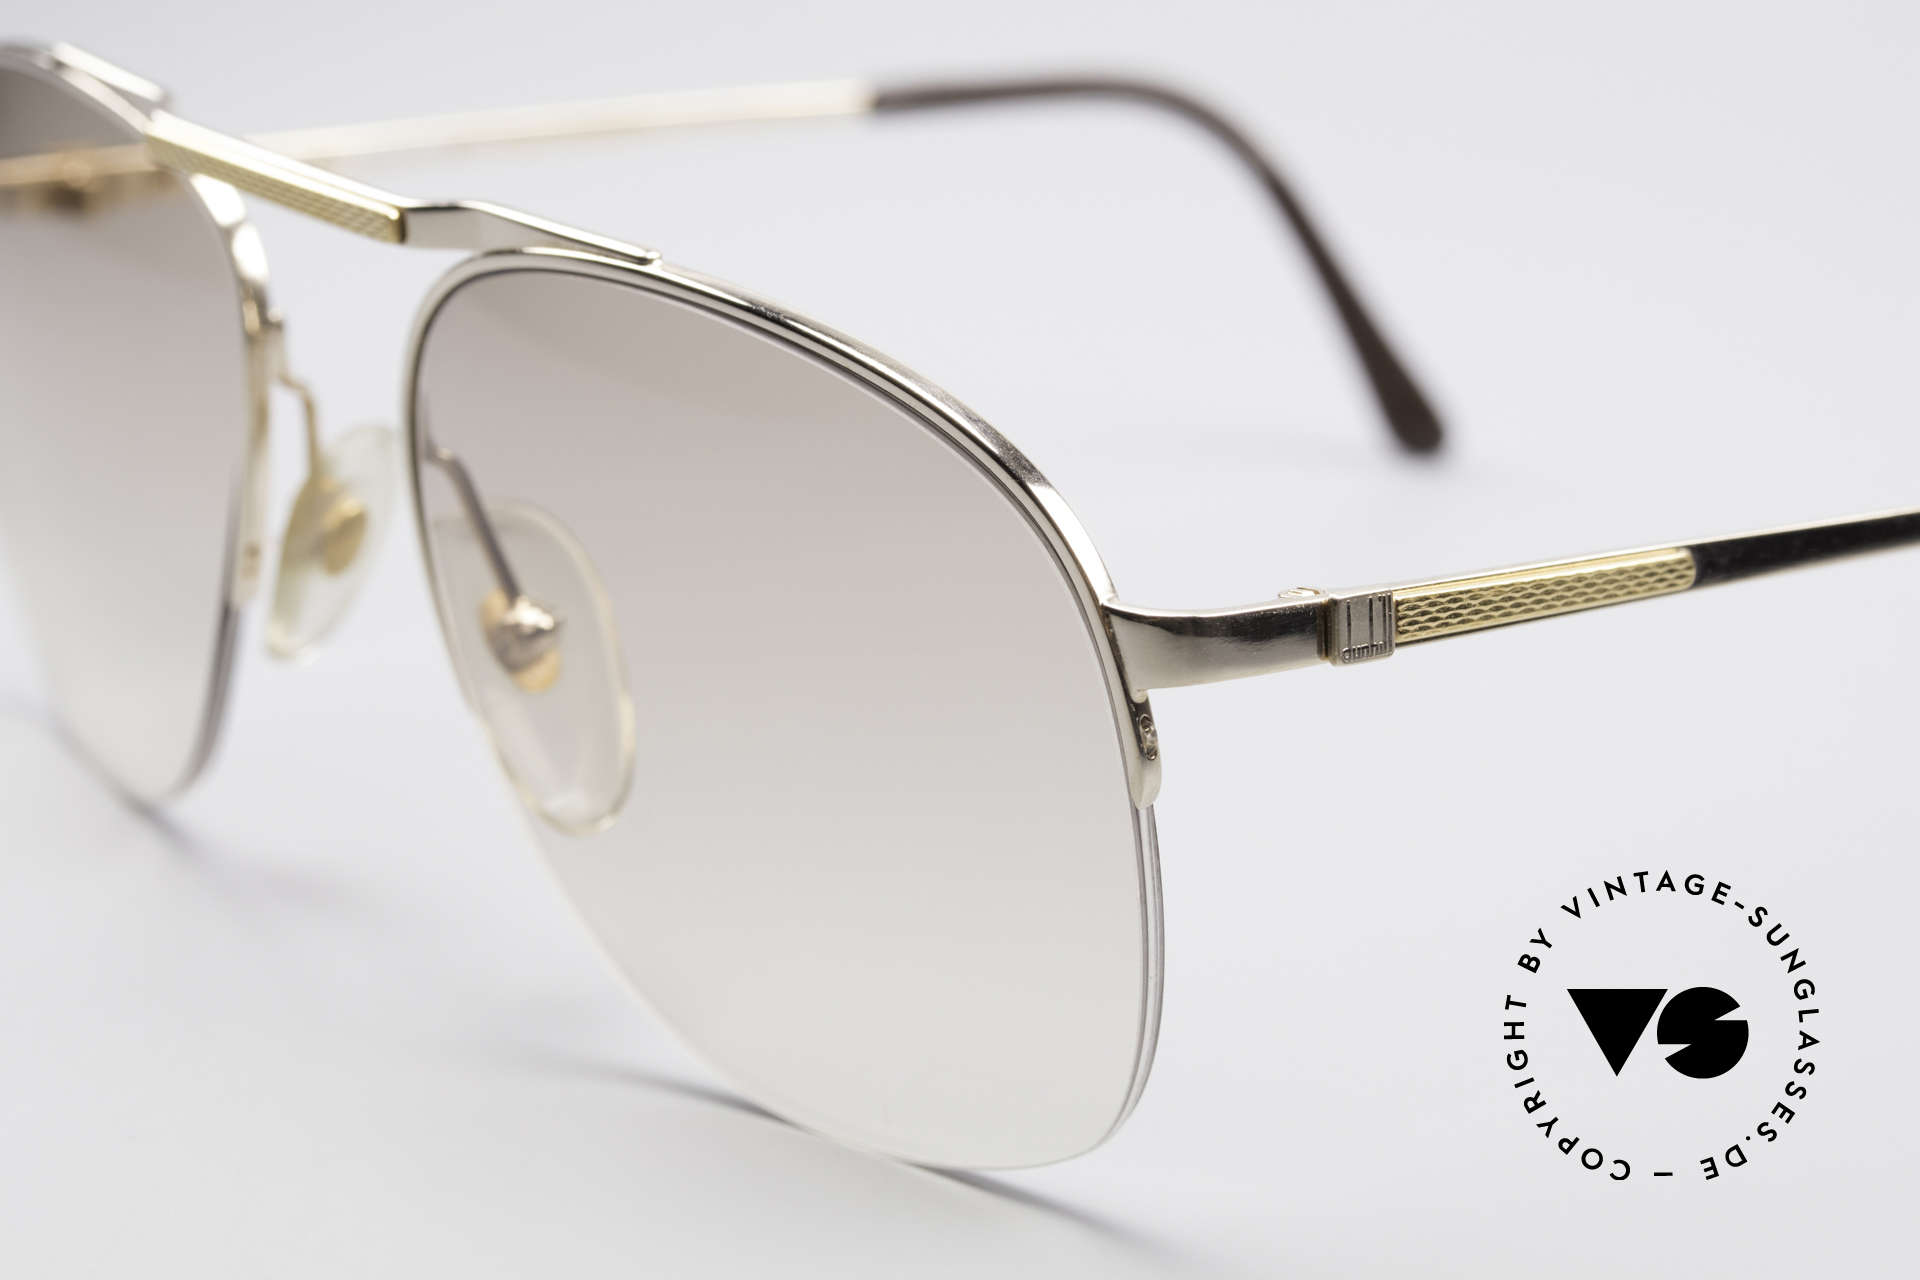 Dunhill 6022 Rare 80's Gentlemen's Frame, semi rimless (lightweight and very pleasant to wear), Made for Men